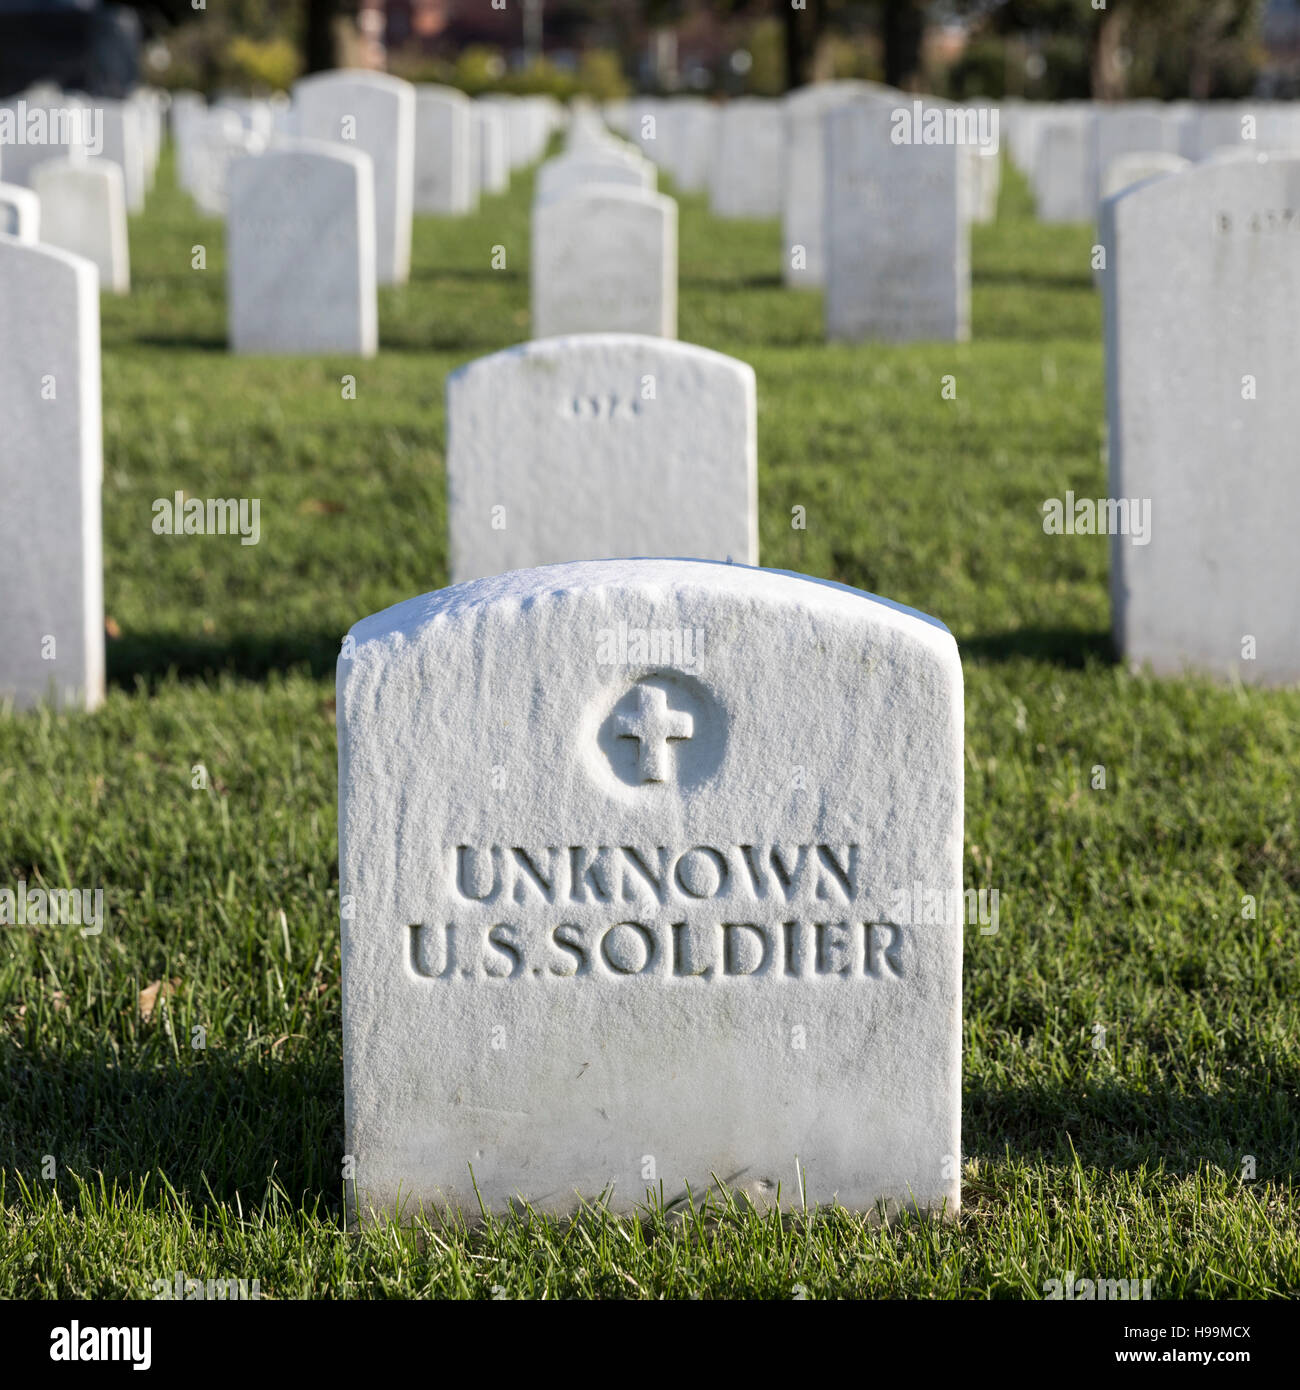 Grave marker for an unknown US Soldier at the Hampton National Cemetery, Hampton, Virginia, USA - Stock Image